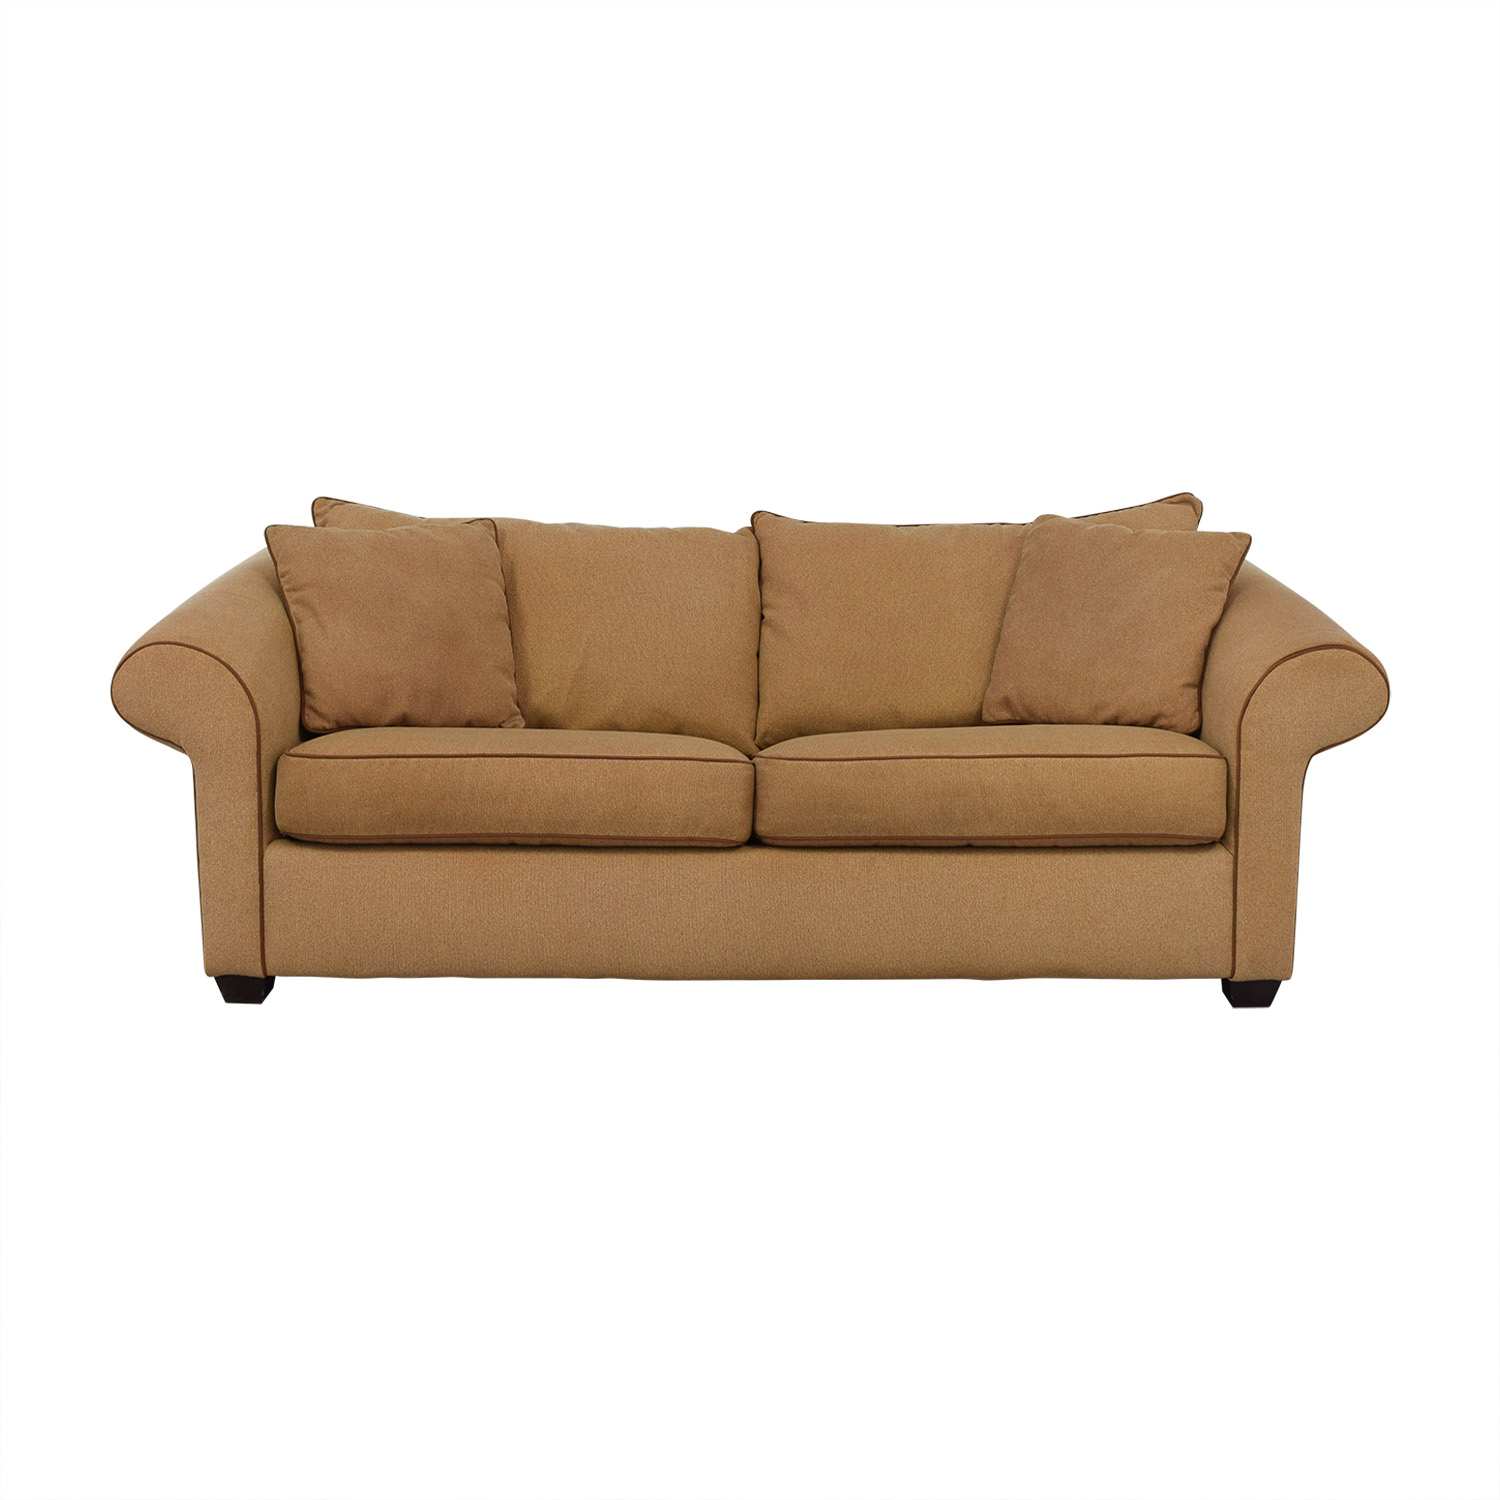 Storehouse Storehouse Sleeper Sofa used